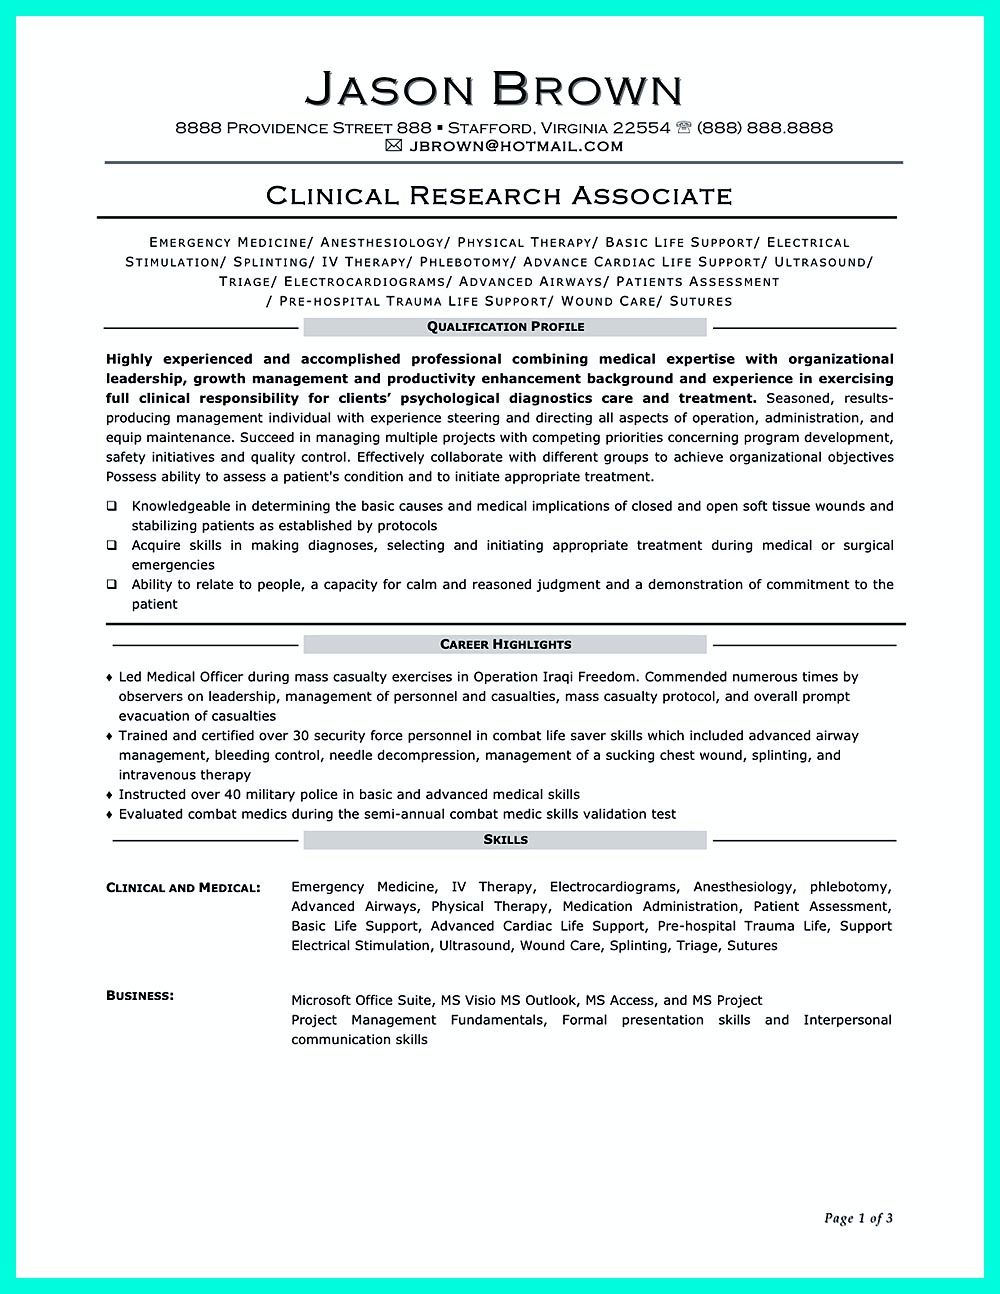 Samples Of Resume Objectives Clinical Research Associate Resume Objectives Are Needed To